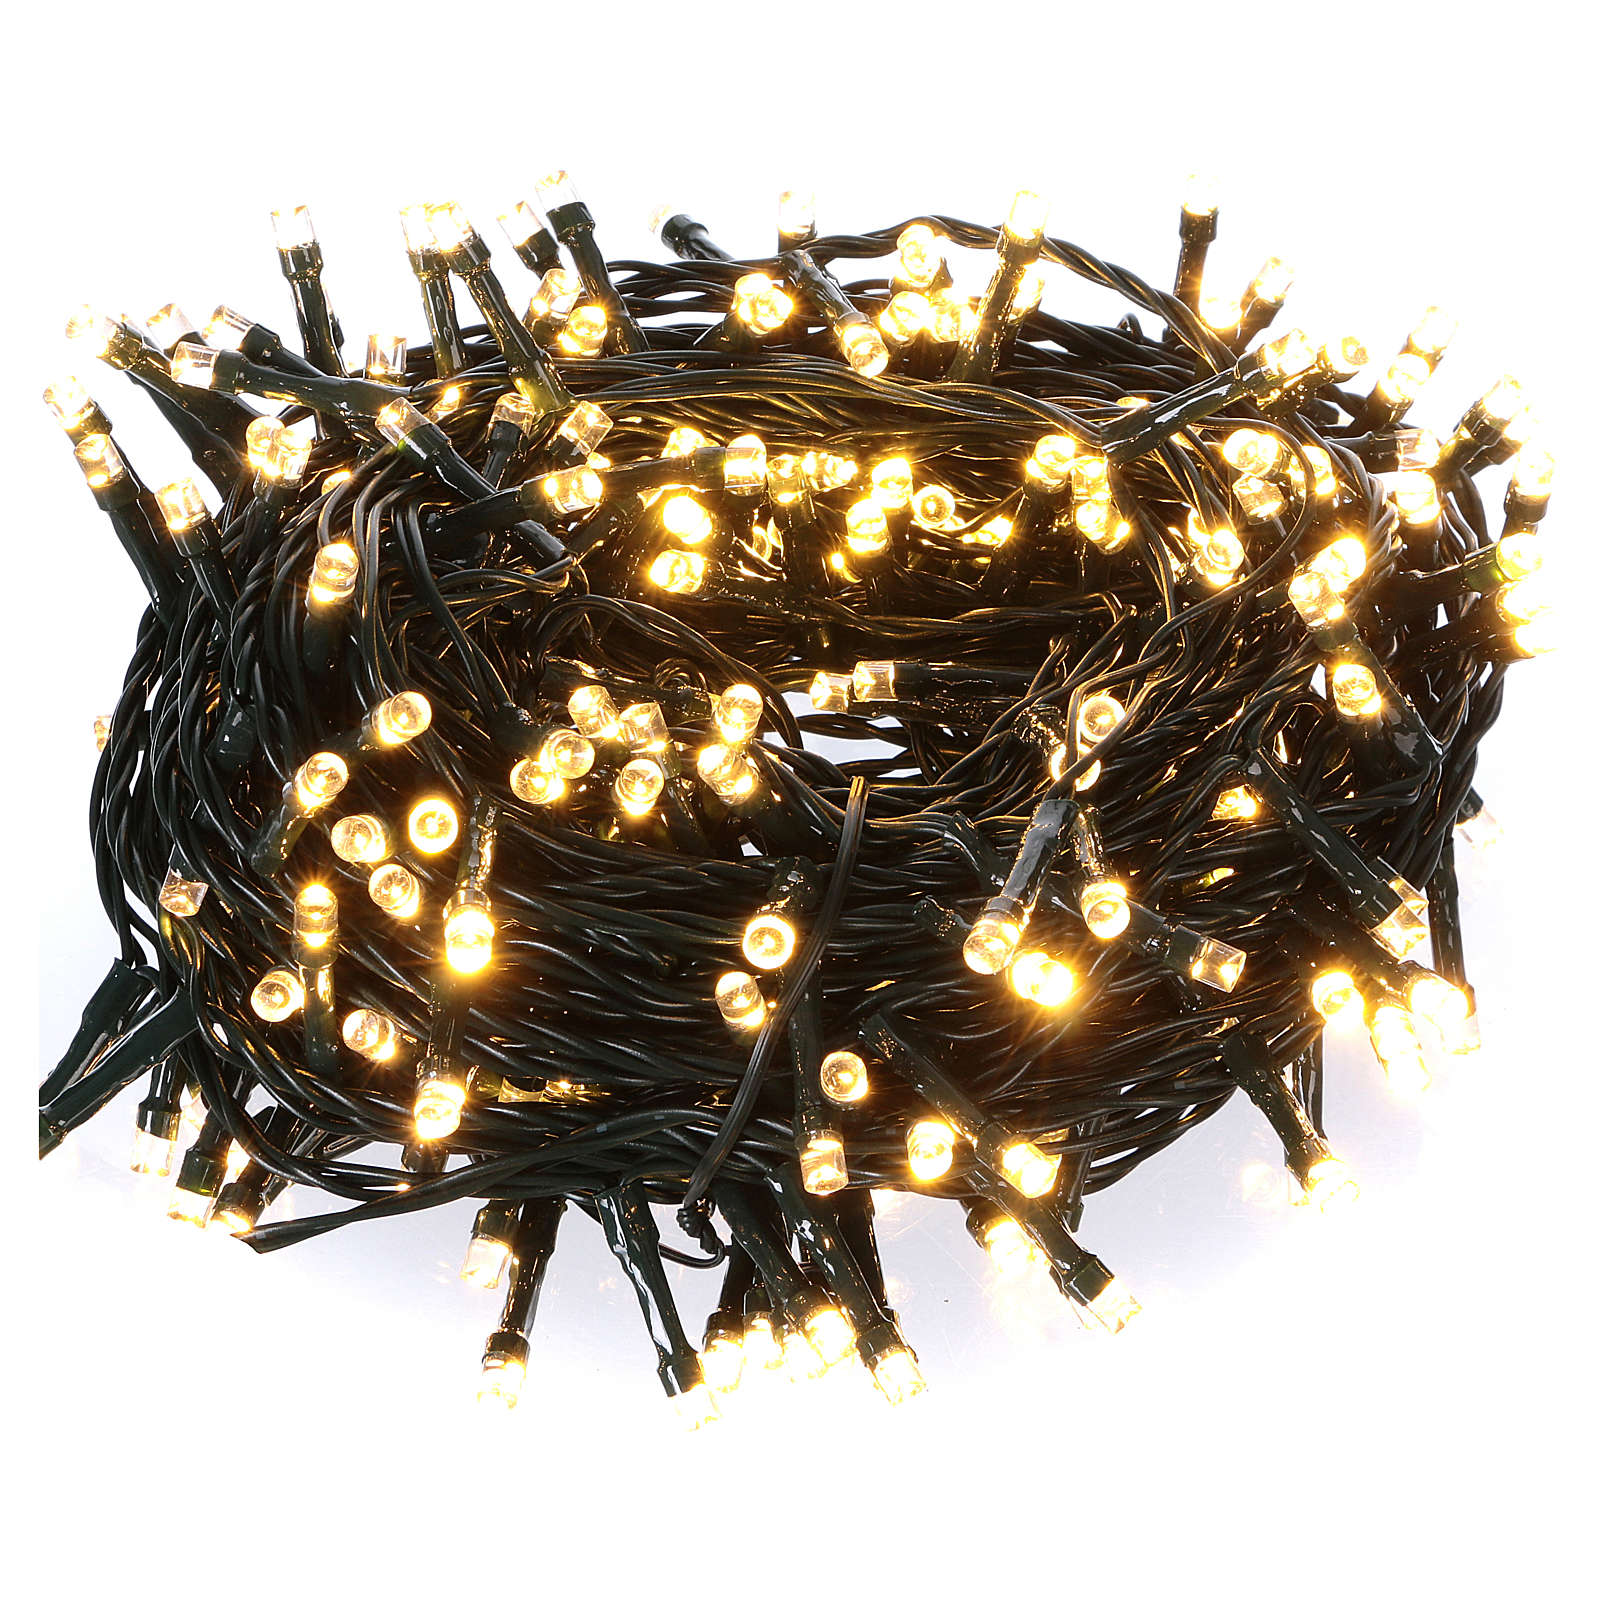 300 LED String Lights Warm and Cold Indoor and Outdoor Use 3